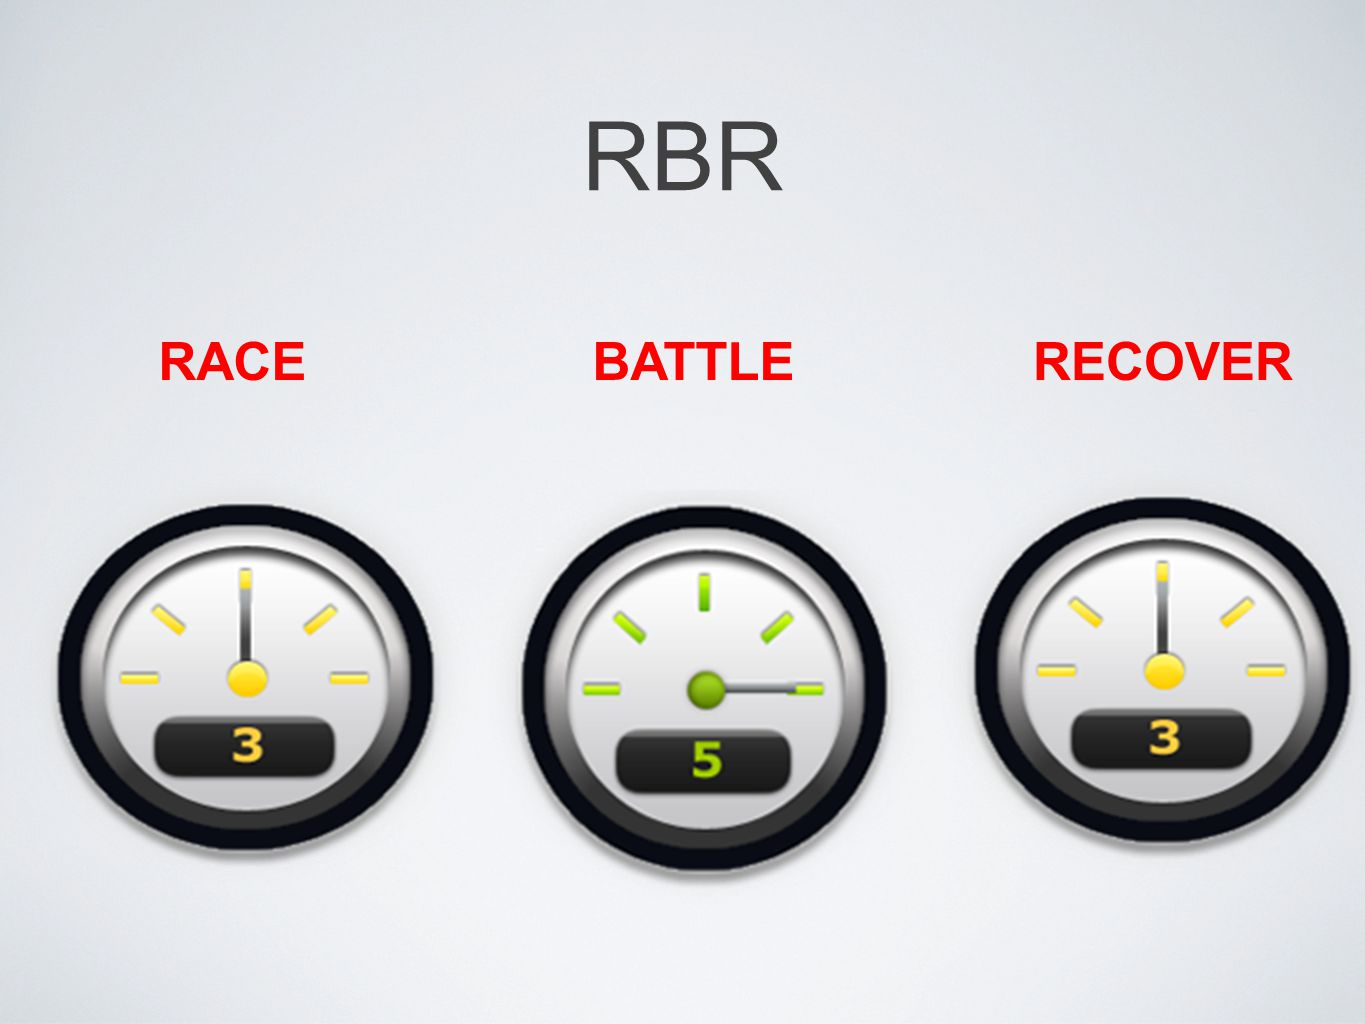 RBR RACERECOVERBATTLE